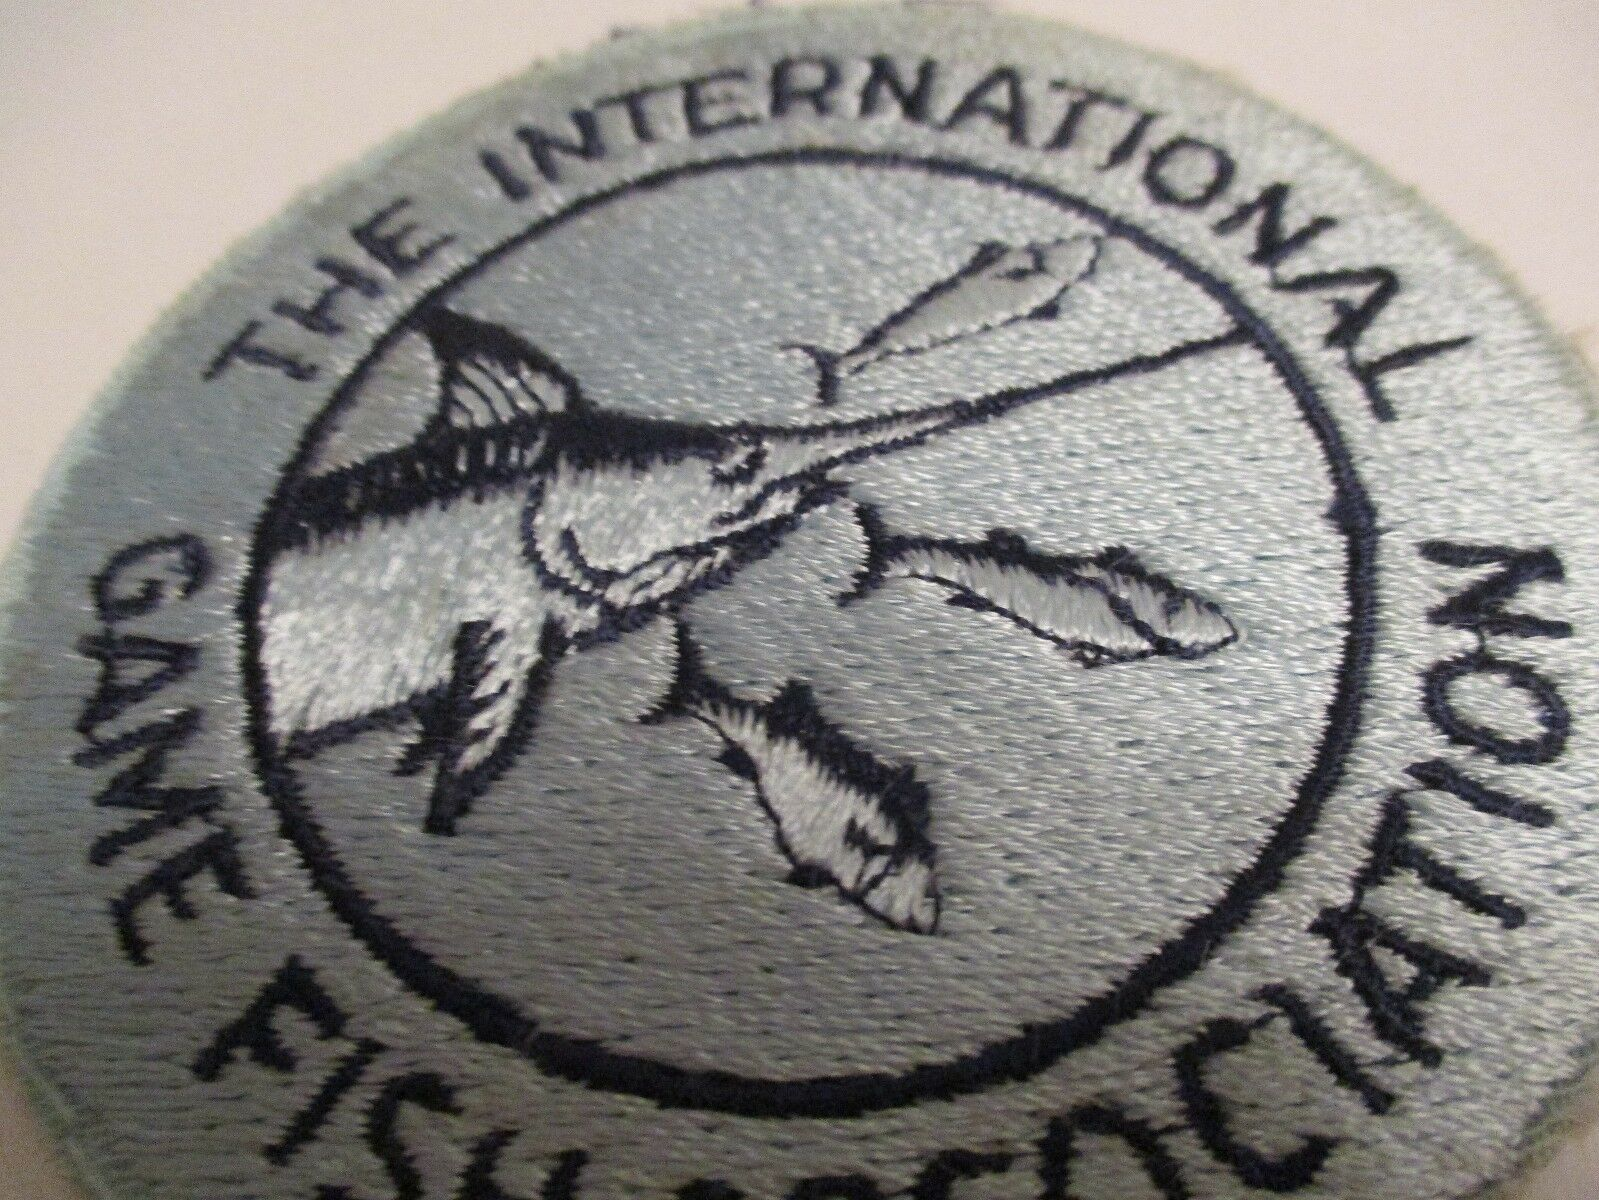 FISHING PATCH 1950's THE INTERNATIONAL GAME FISH ASSOCIATION 3.5 x 3.5 INCHES